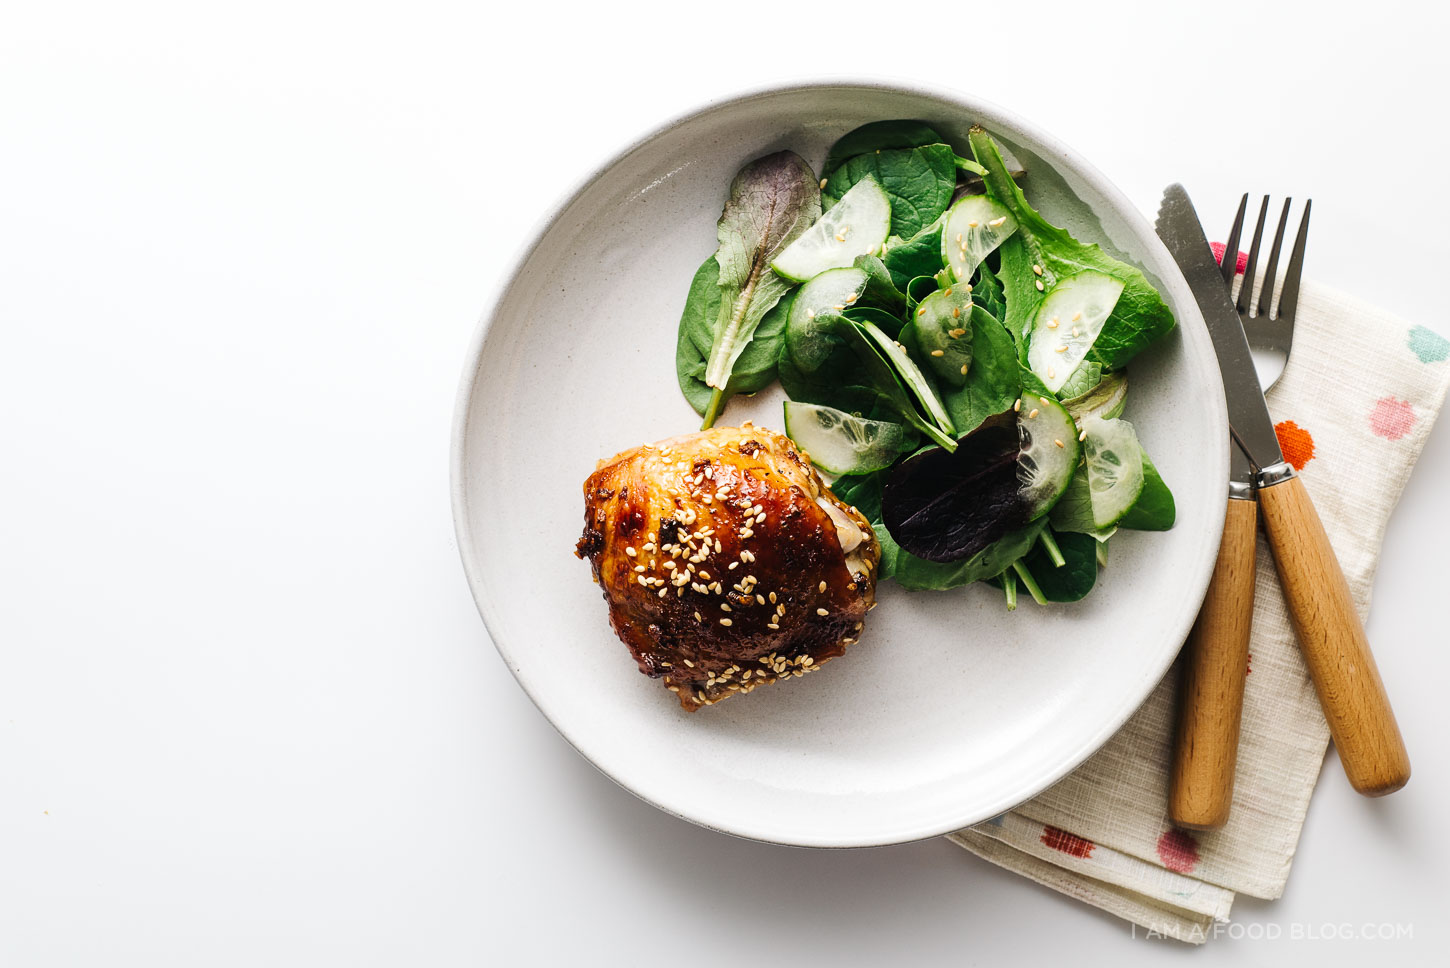 easy oven baked sesame chicken recipe - www.iamafoodblog.com